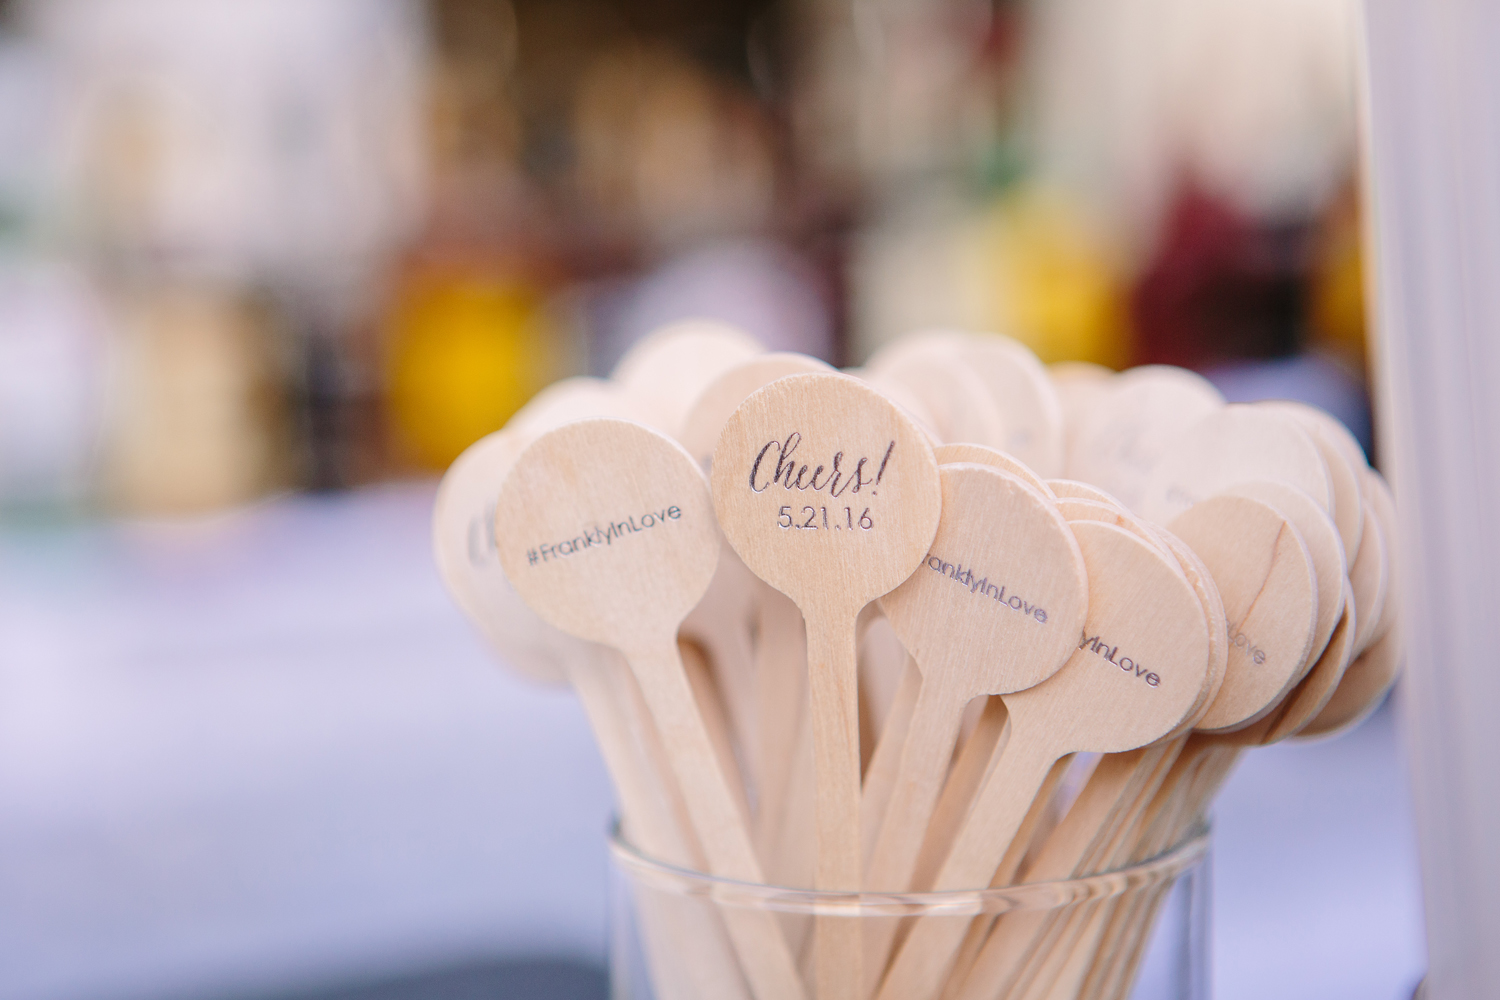 Wood drink stirrers with cheers wedding date and wedding hashtag